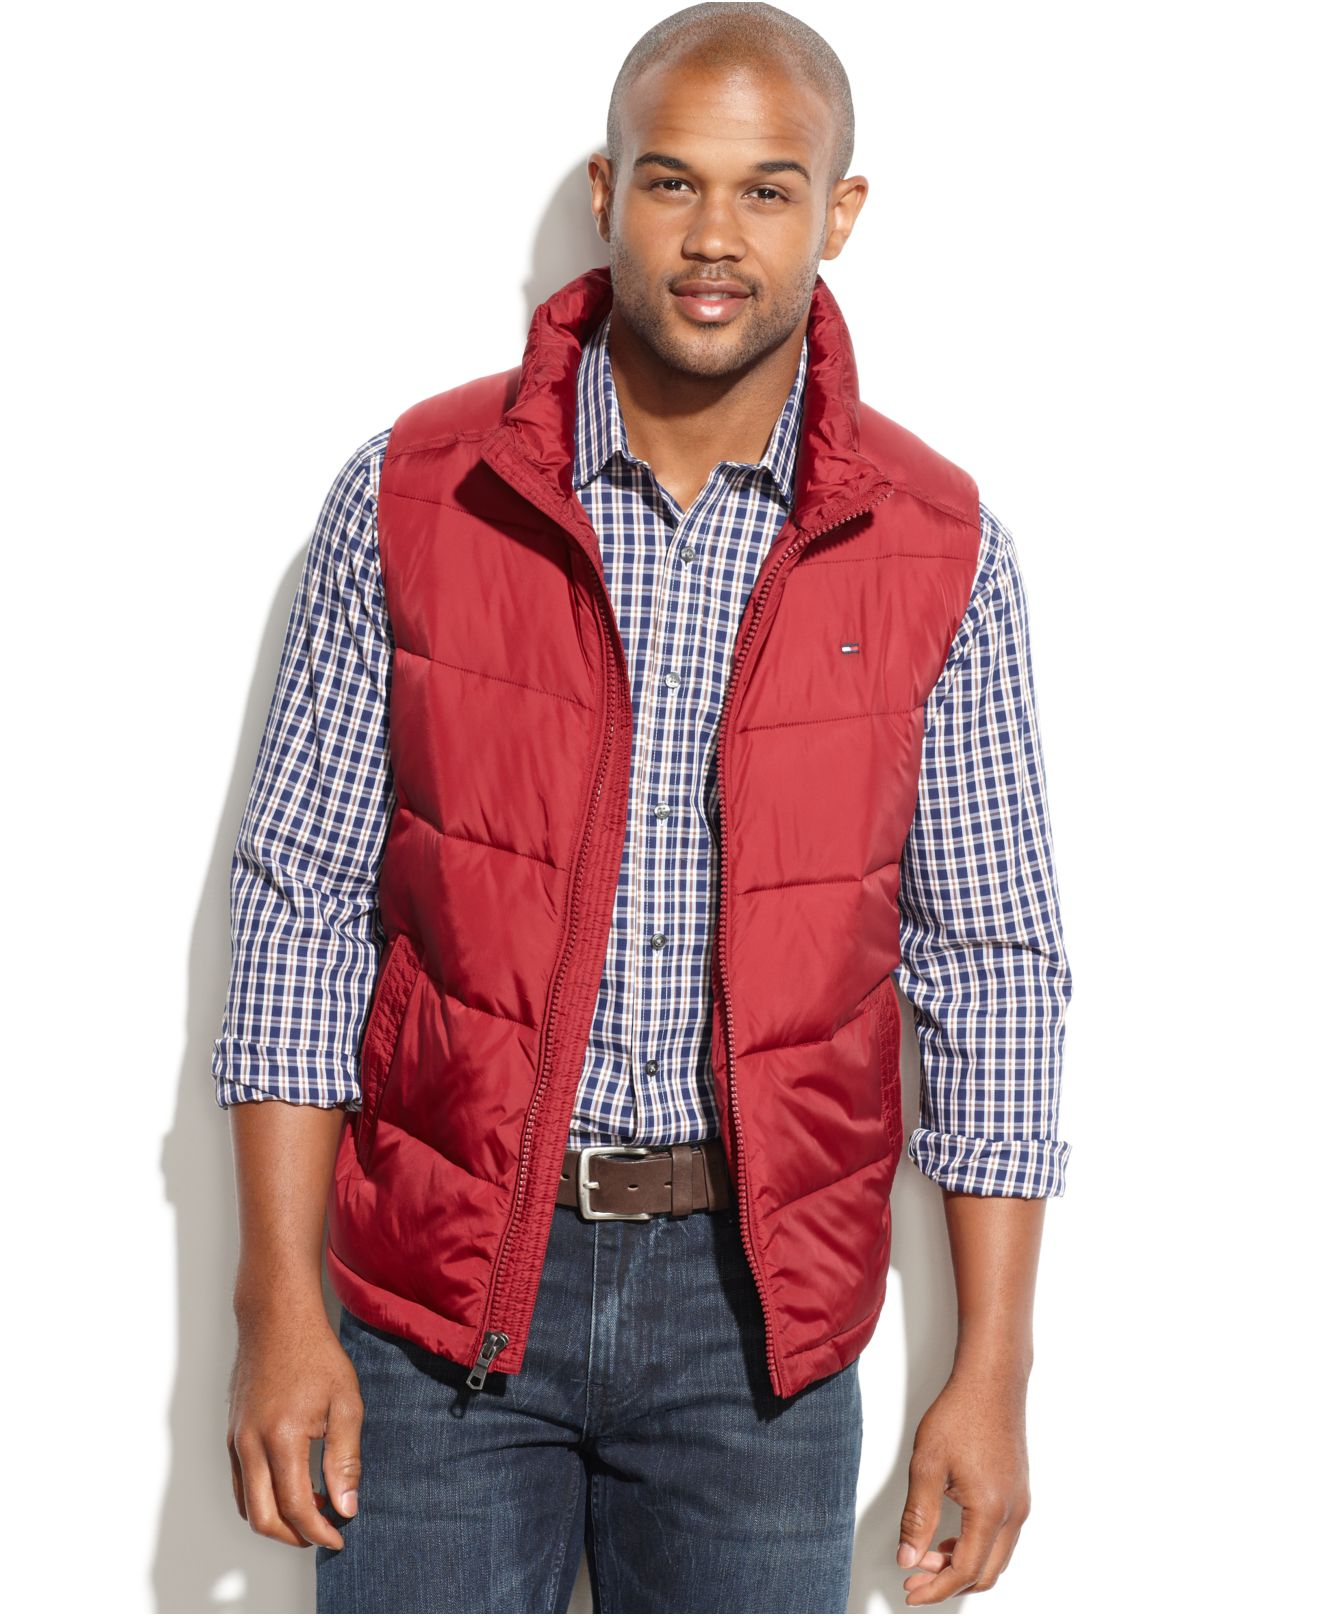 Stay warm on blustery days with men's vests from Columbia Sportswear. Browse this collection of versatile men's outdoor vests and find the right style for you.